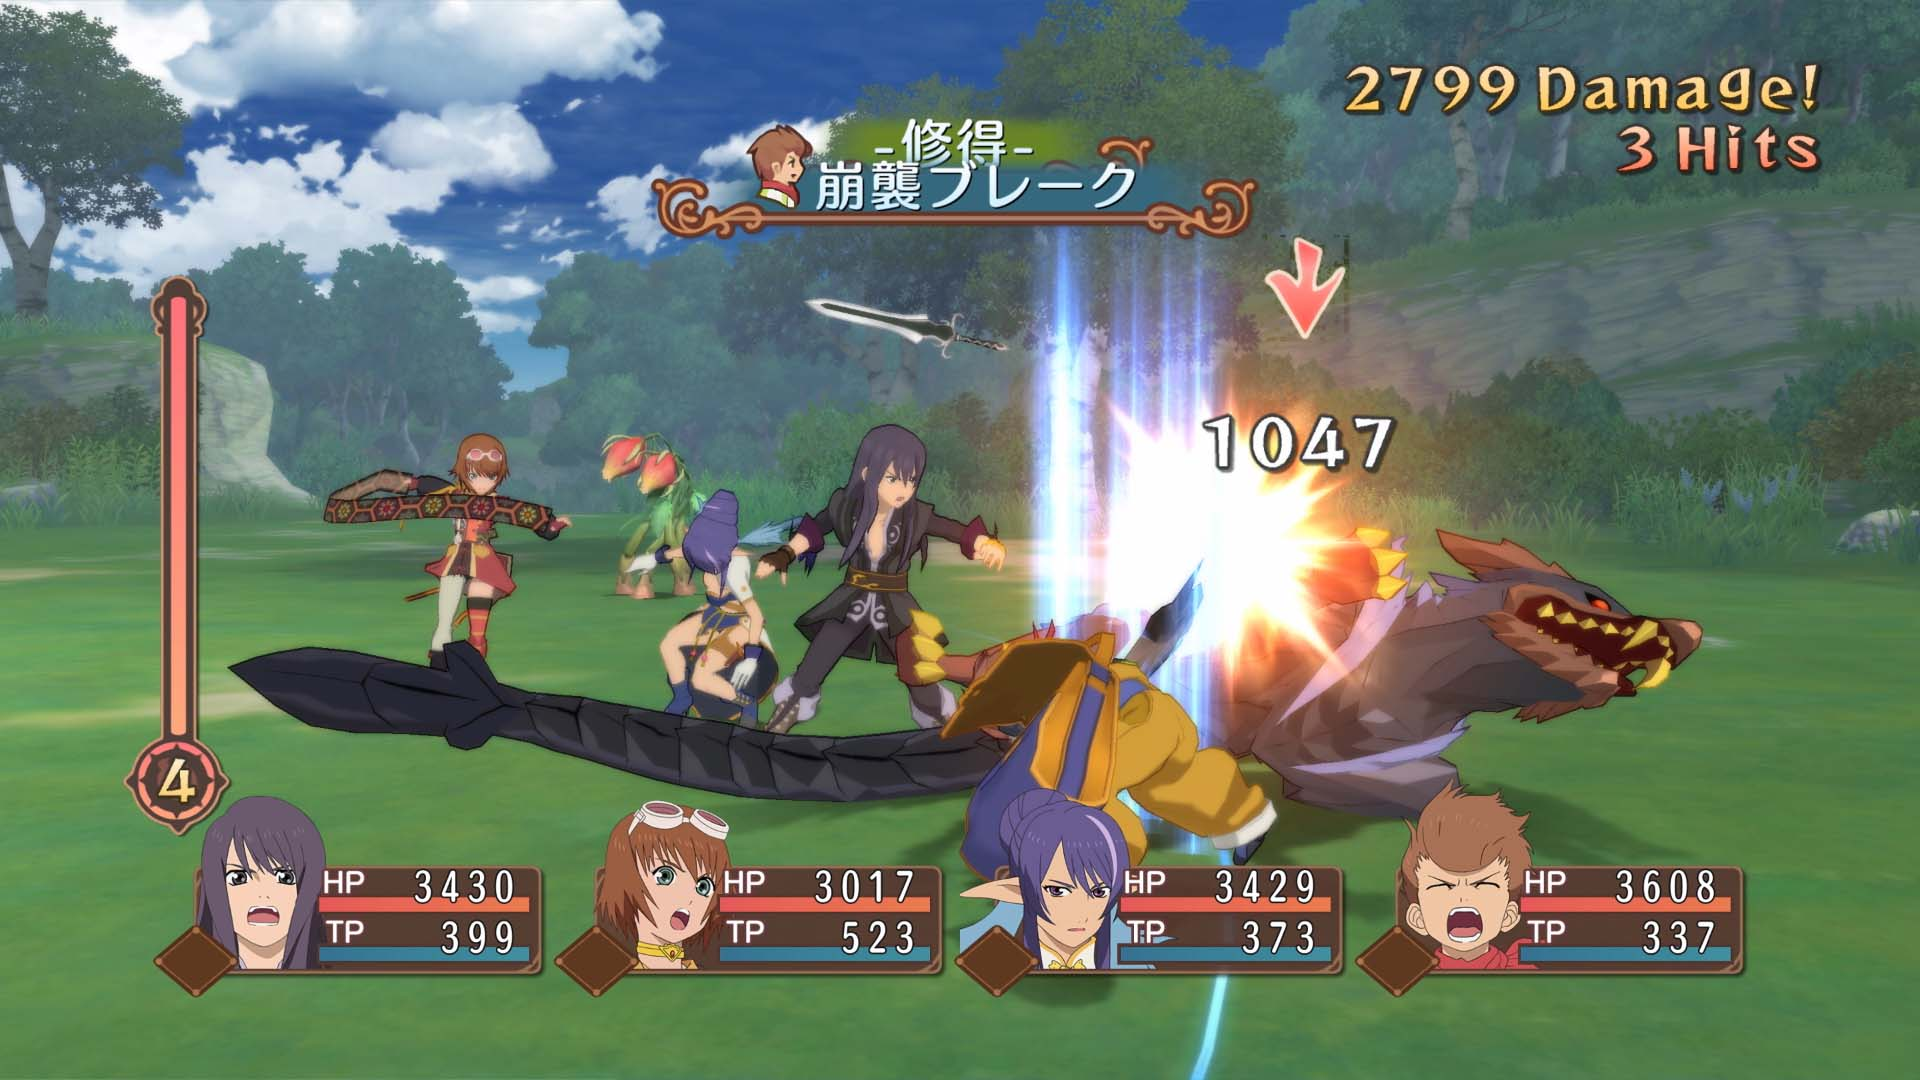 Tales of Vesperia Guide: how to switch characters in battle